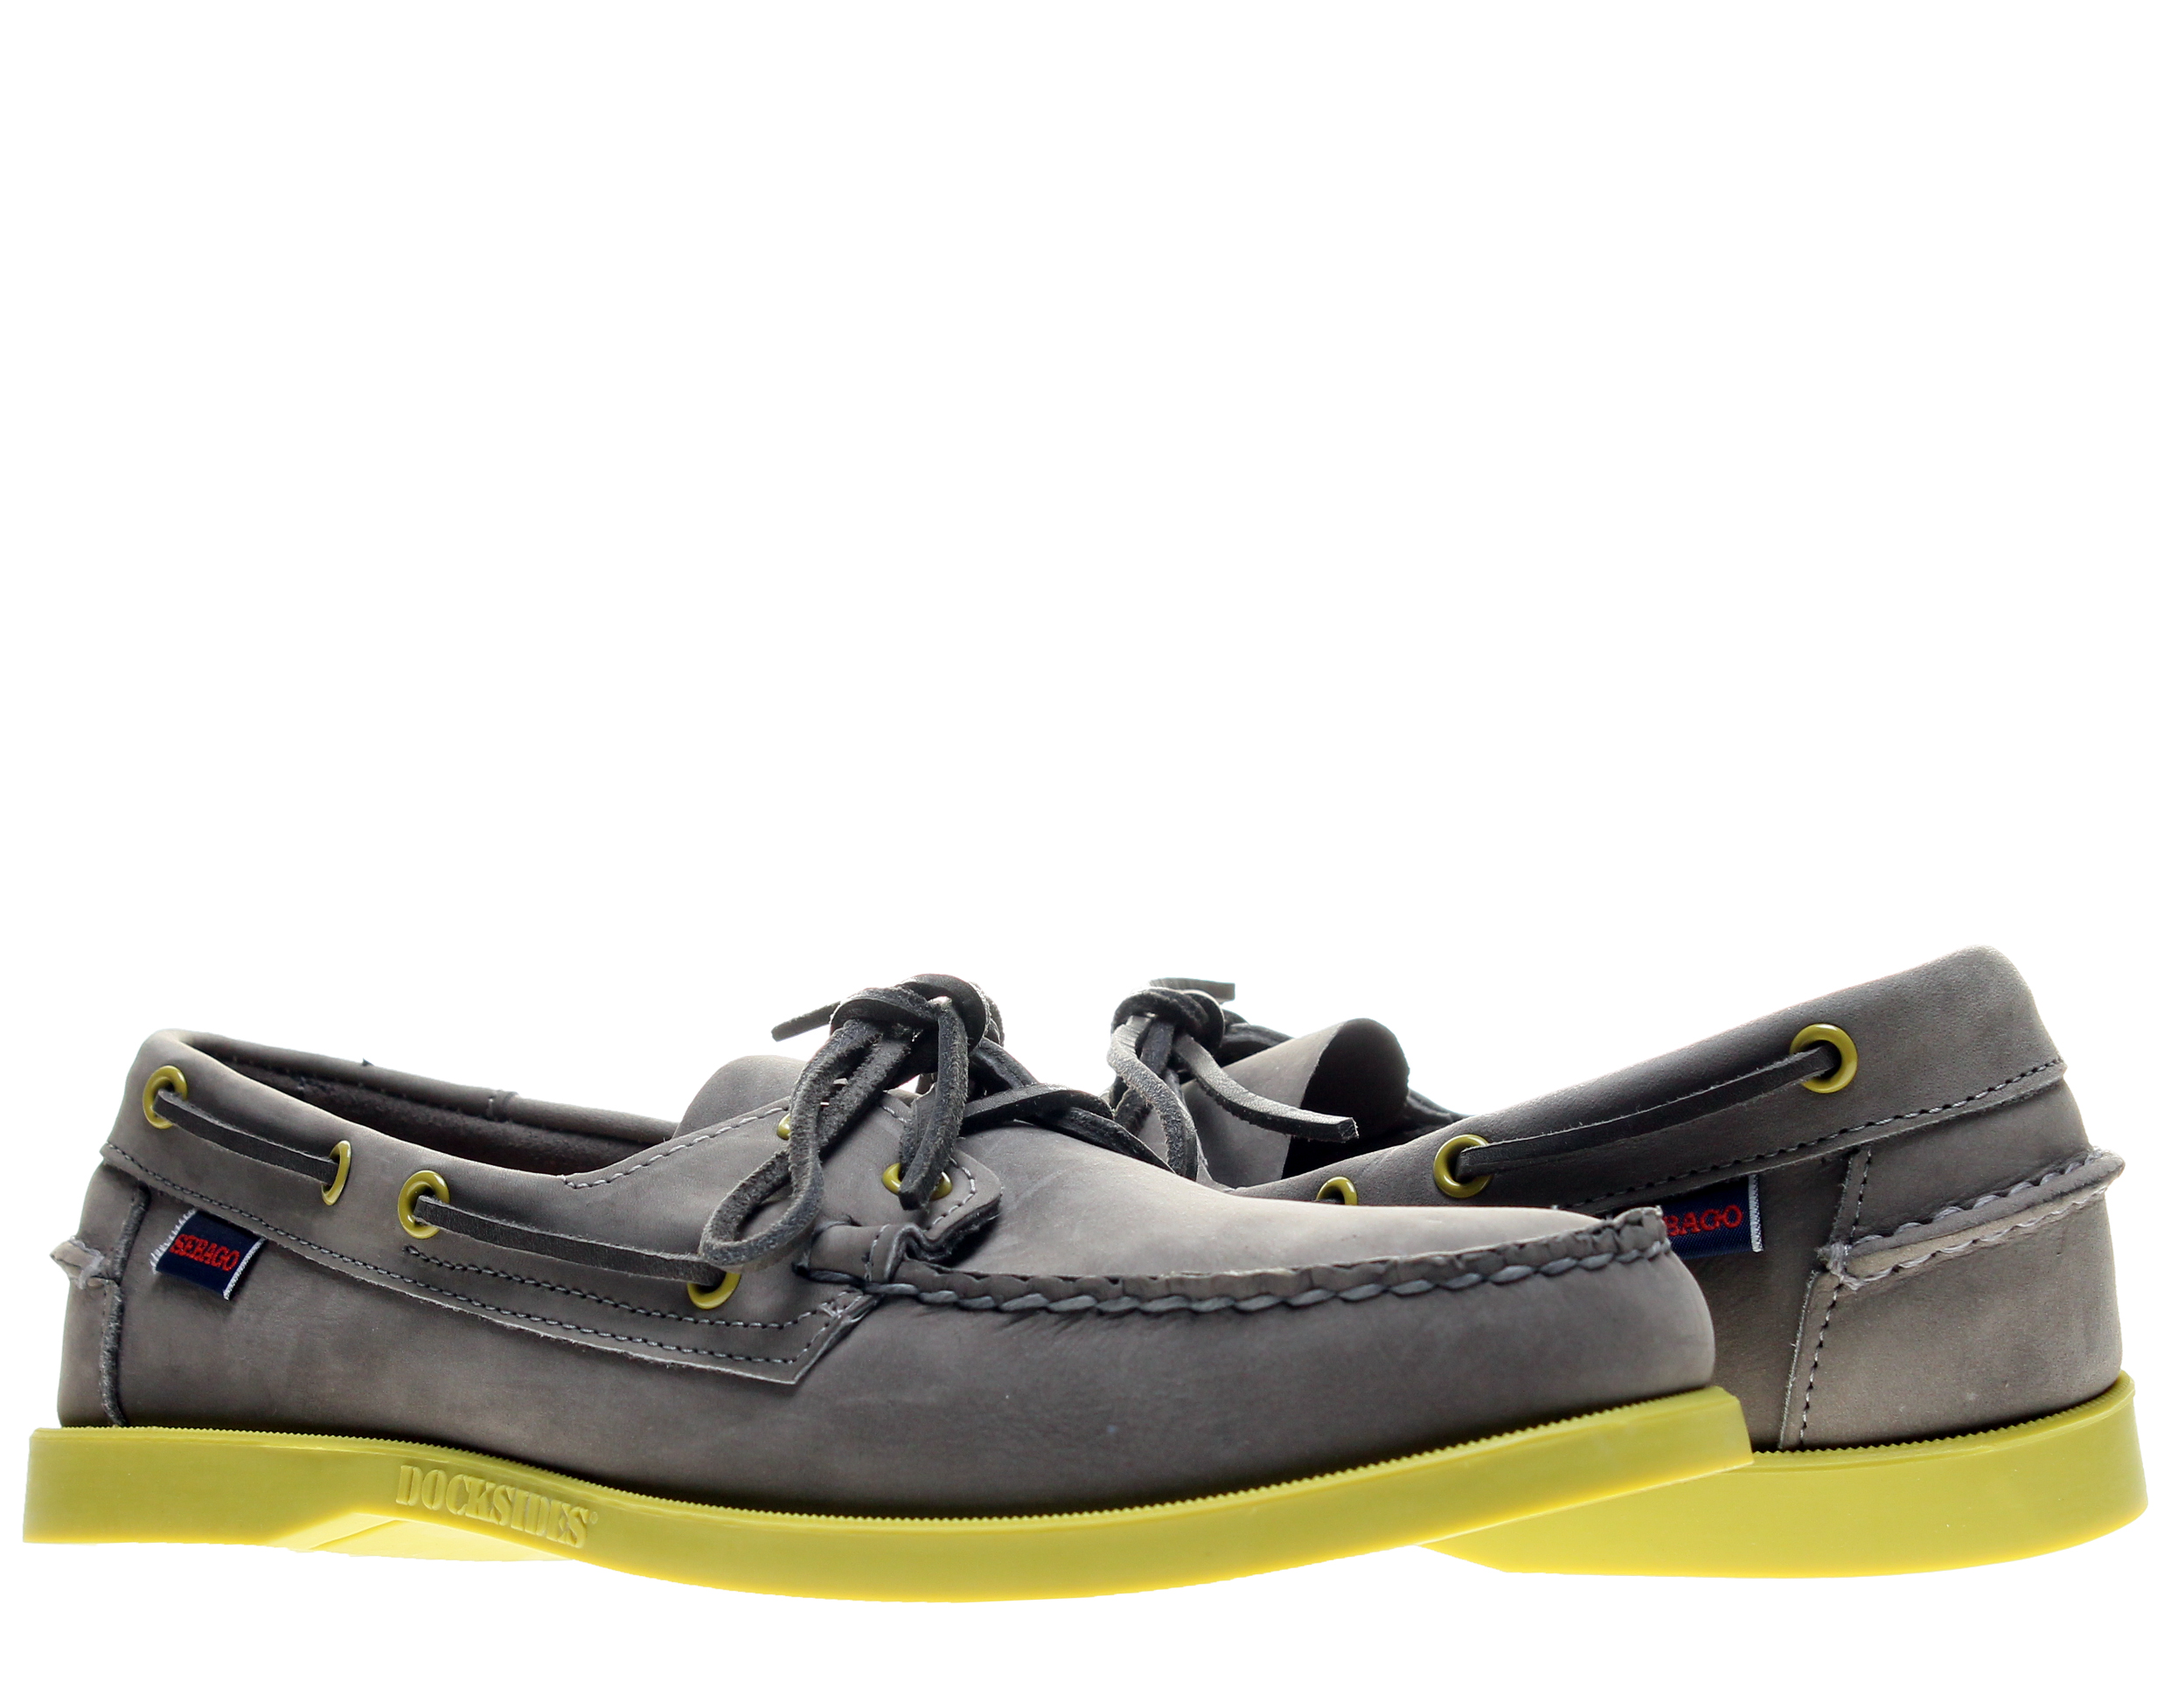 Sebago Docksides Grey Nubuck Yellow Green Men's Boat Shoes B720106 by